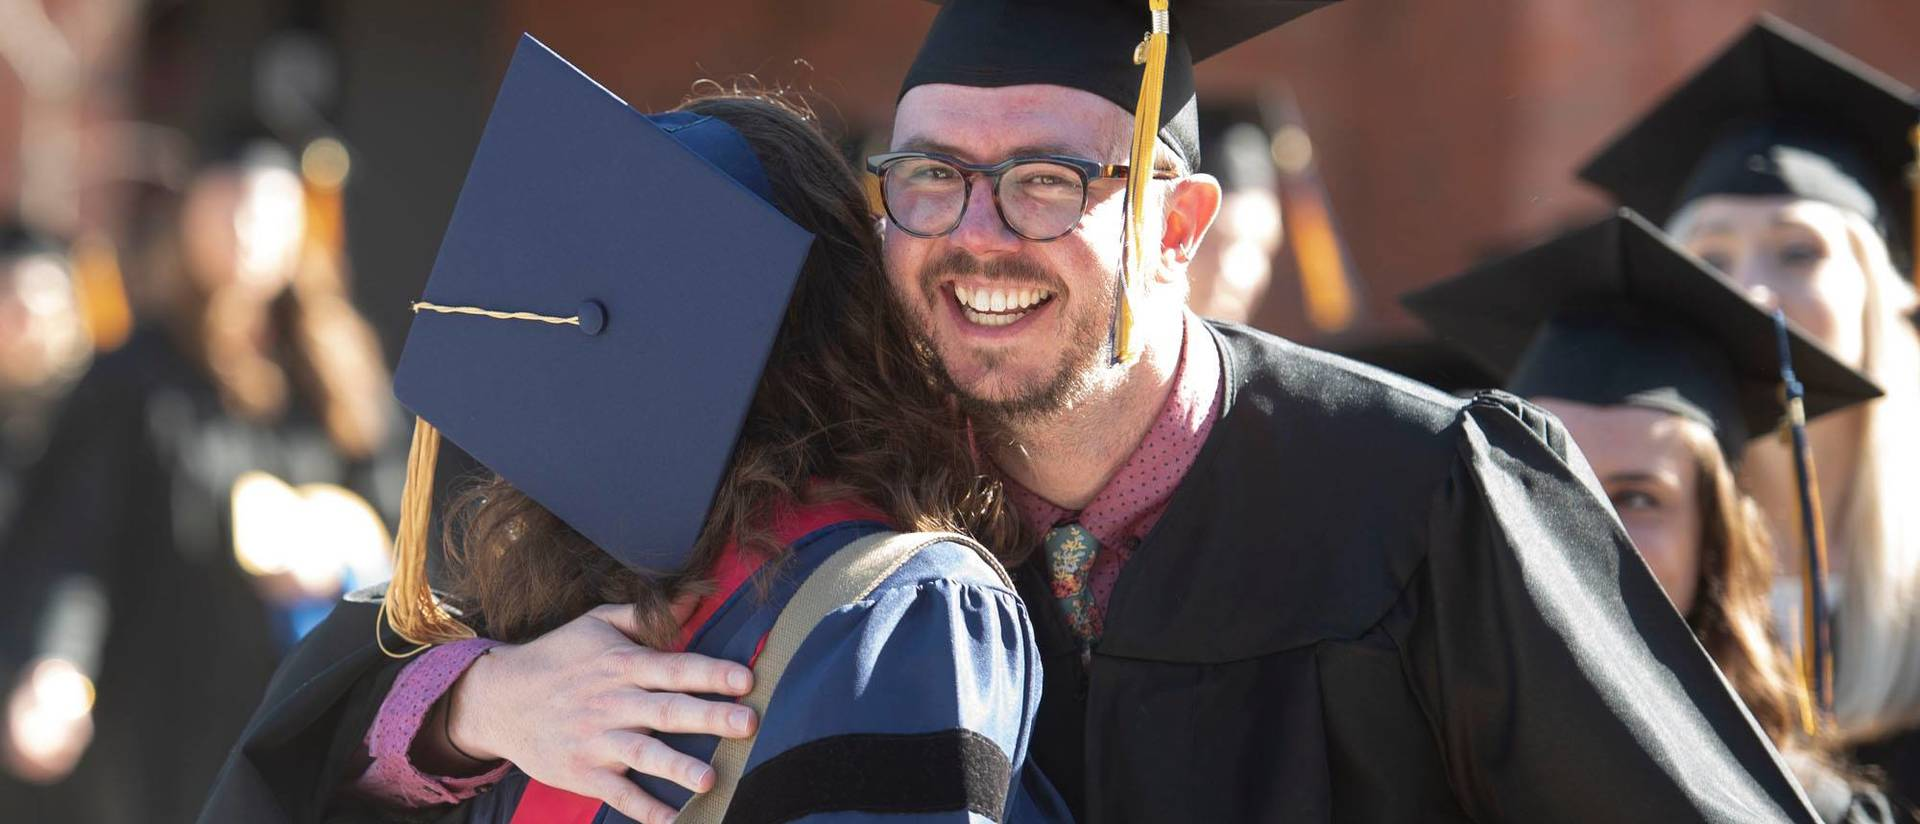 Grads hugging at commencement